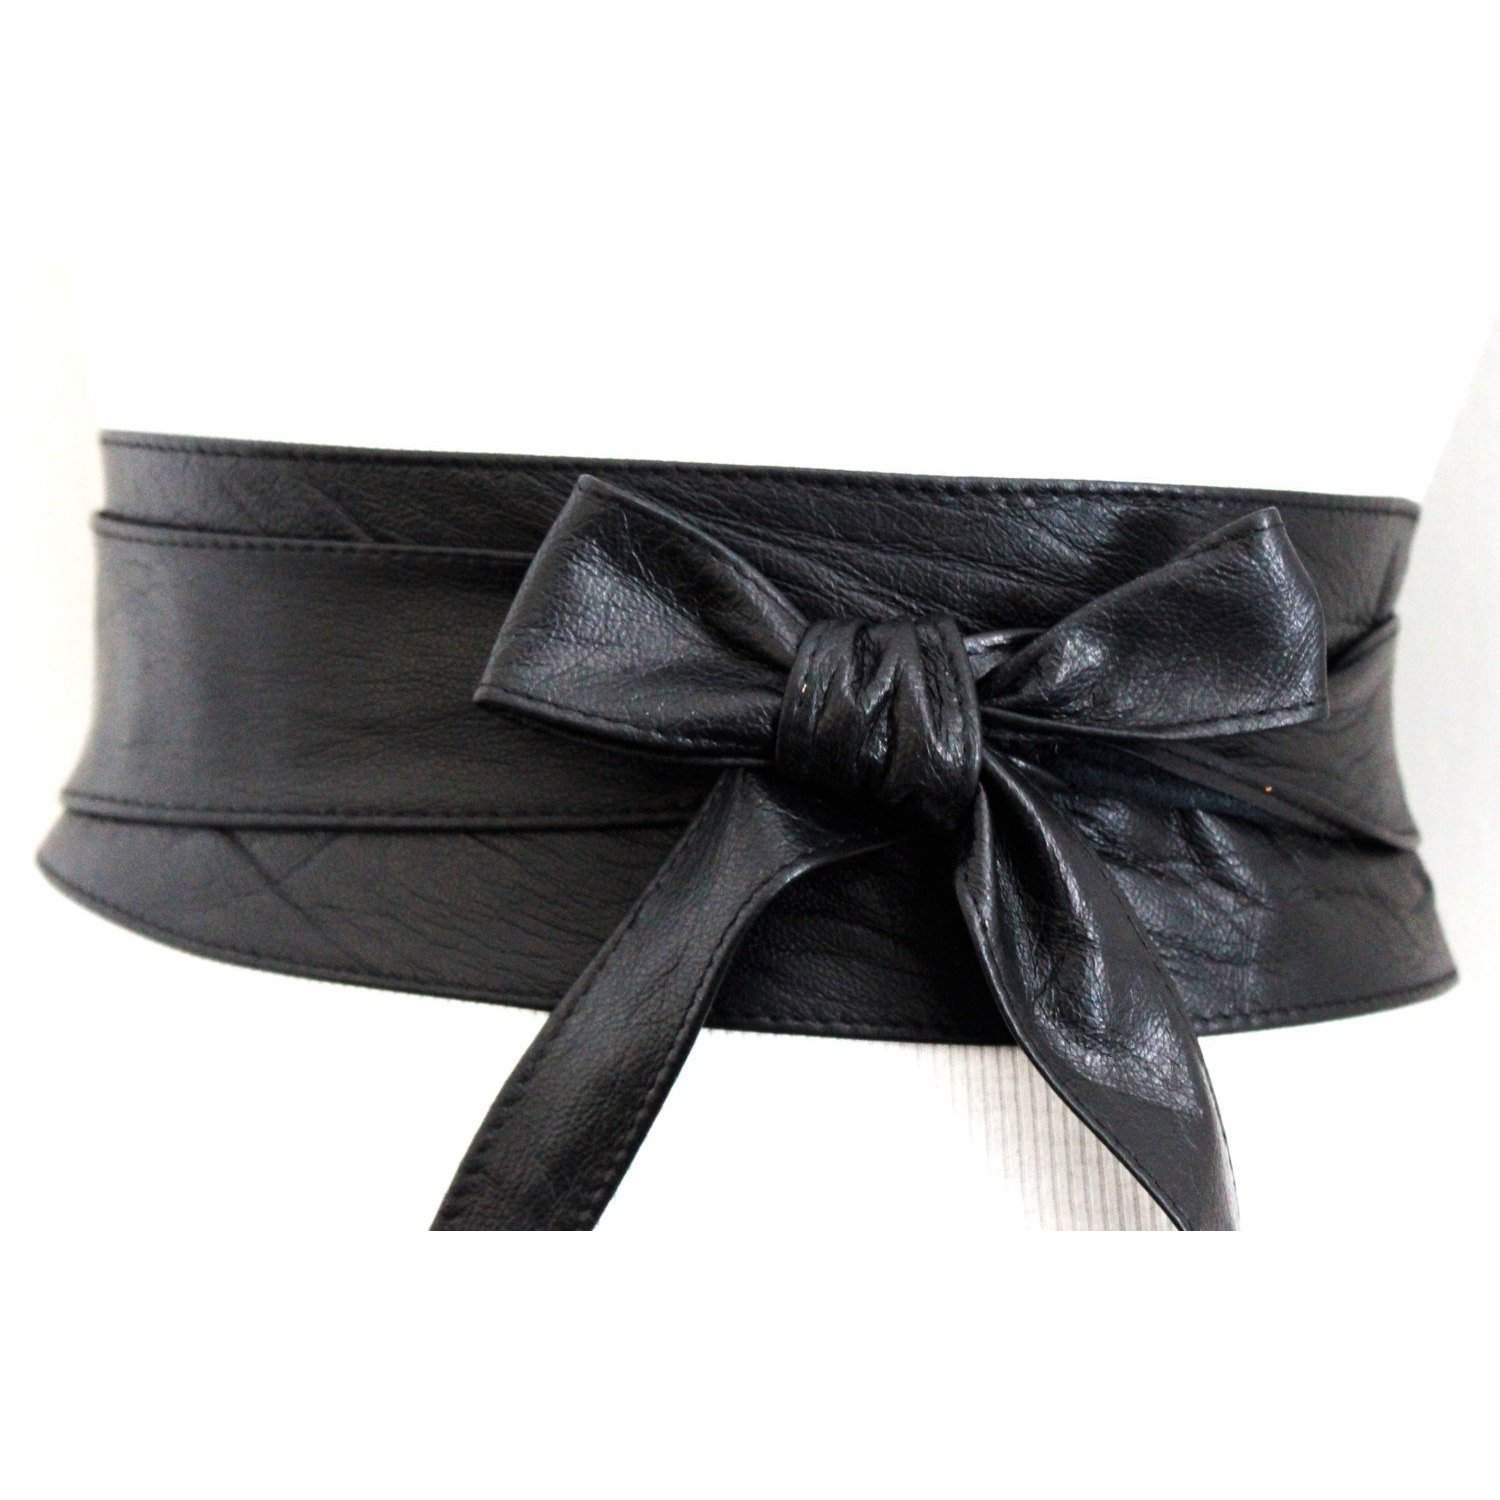 Black Leather Obi Belt | Black Sash Belt - loveyaayaa